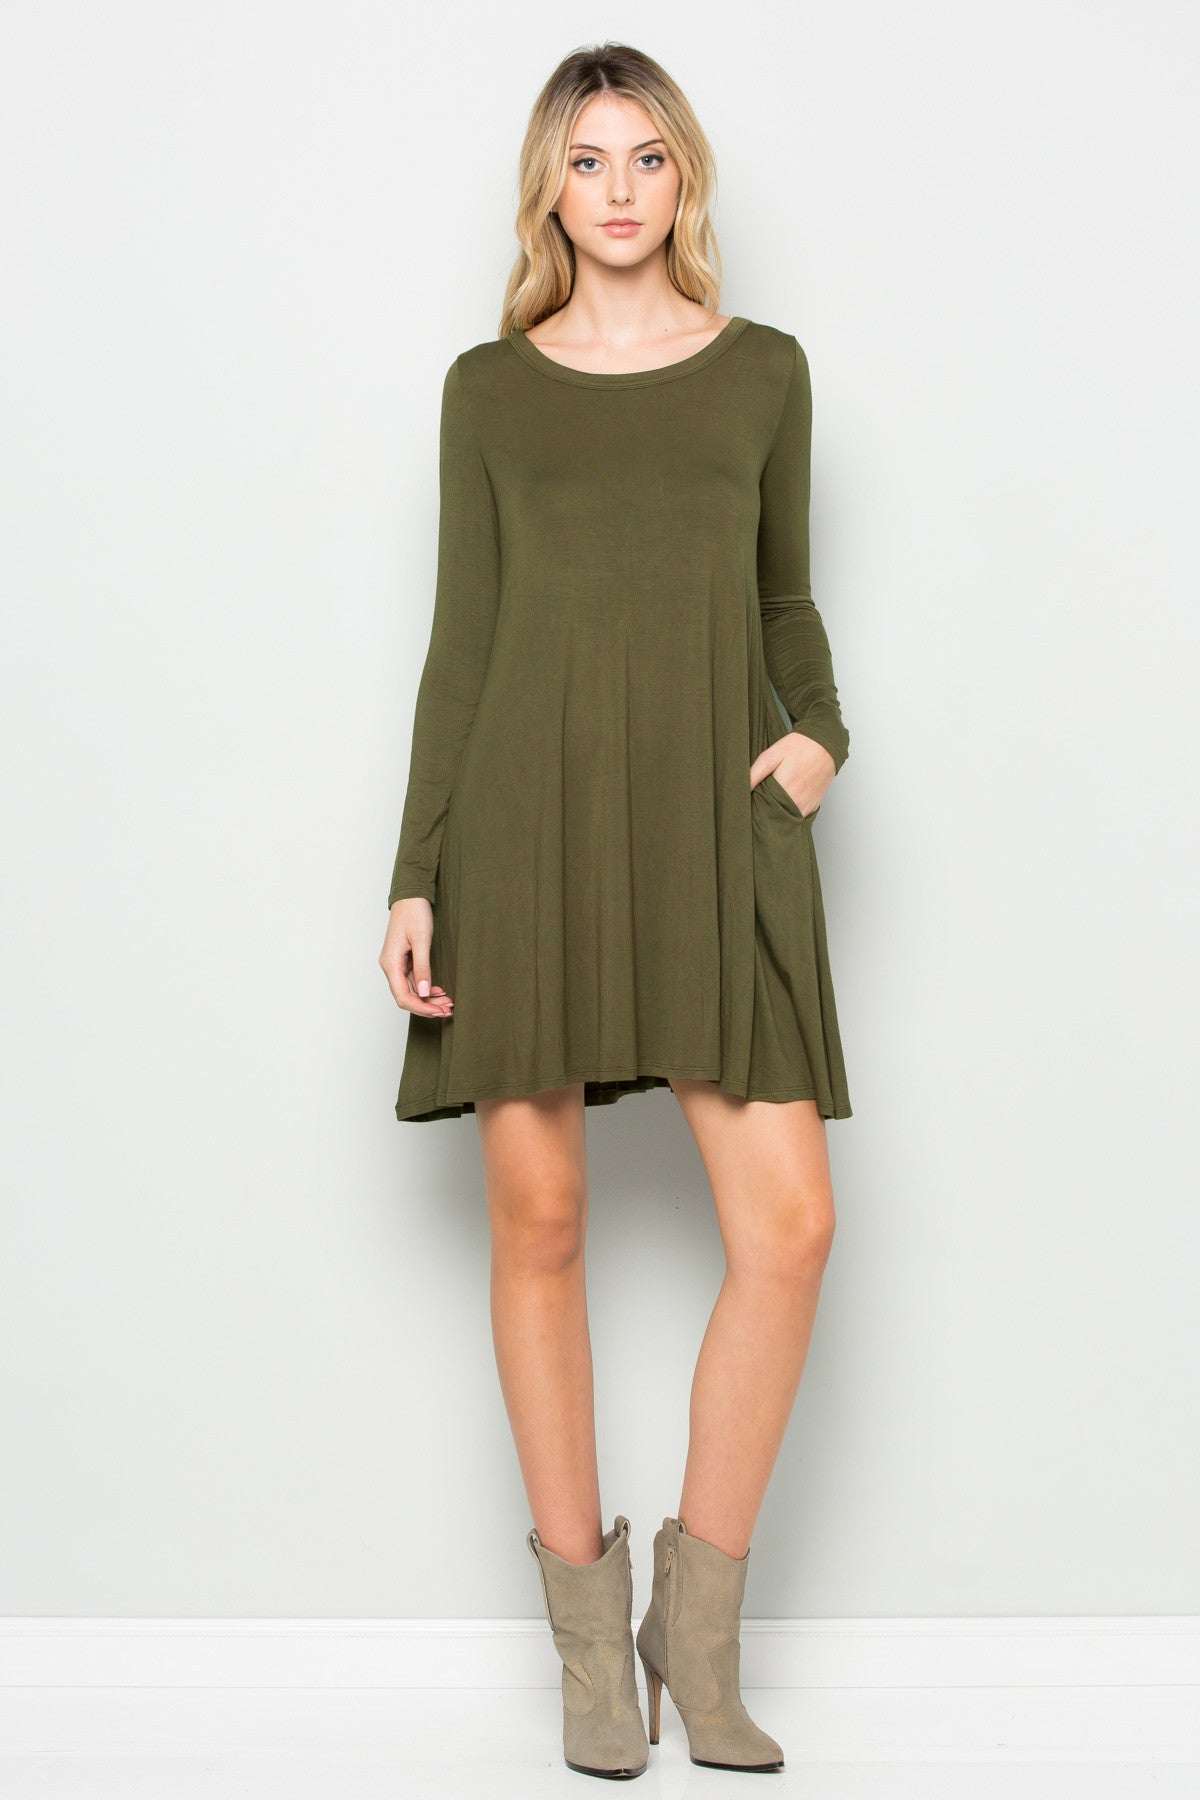 Military Green Long Sleeve Open Back Swing Dress - Dresses - My Yuccie - 10